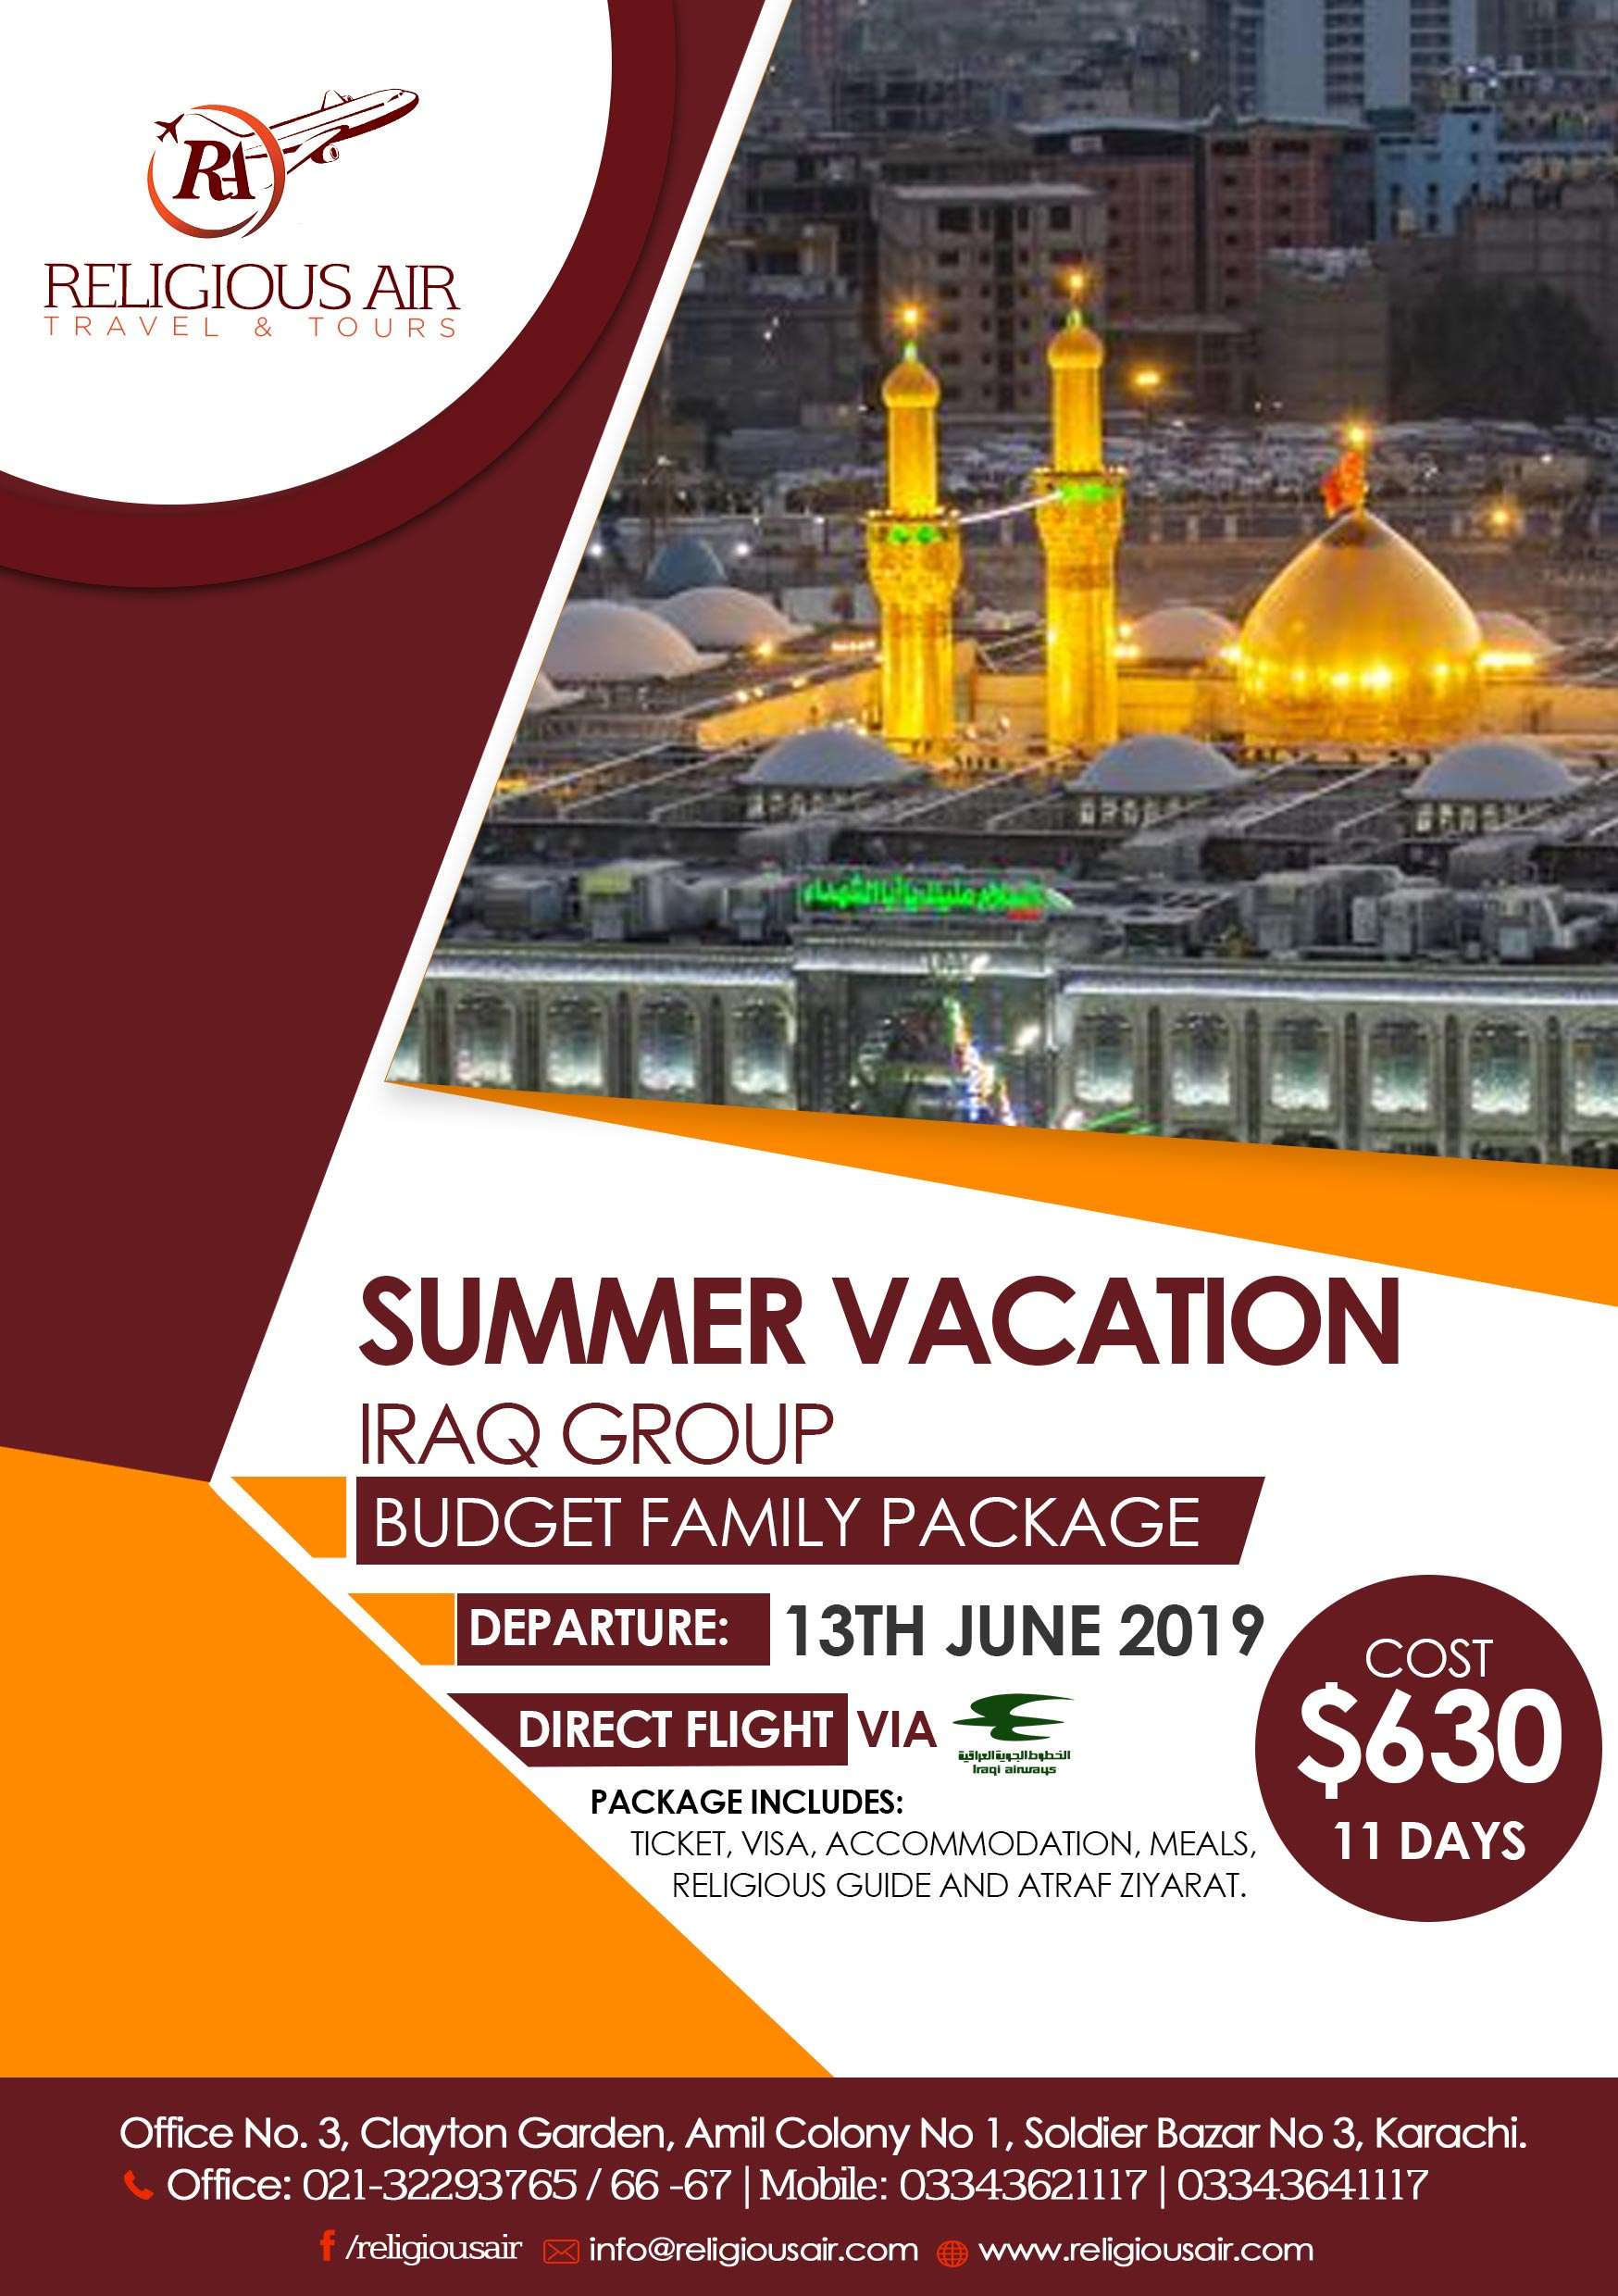 SUMMER VACATION IRAQ GROUP | Religious Air